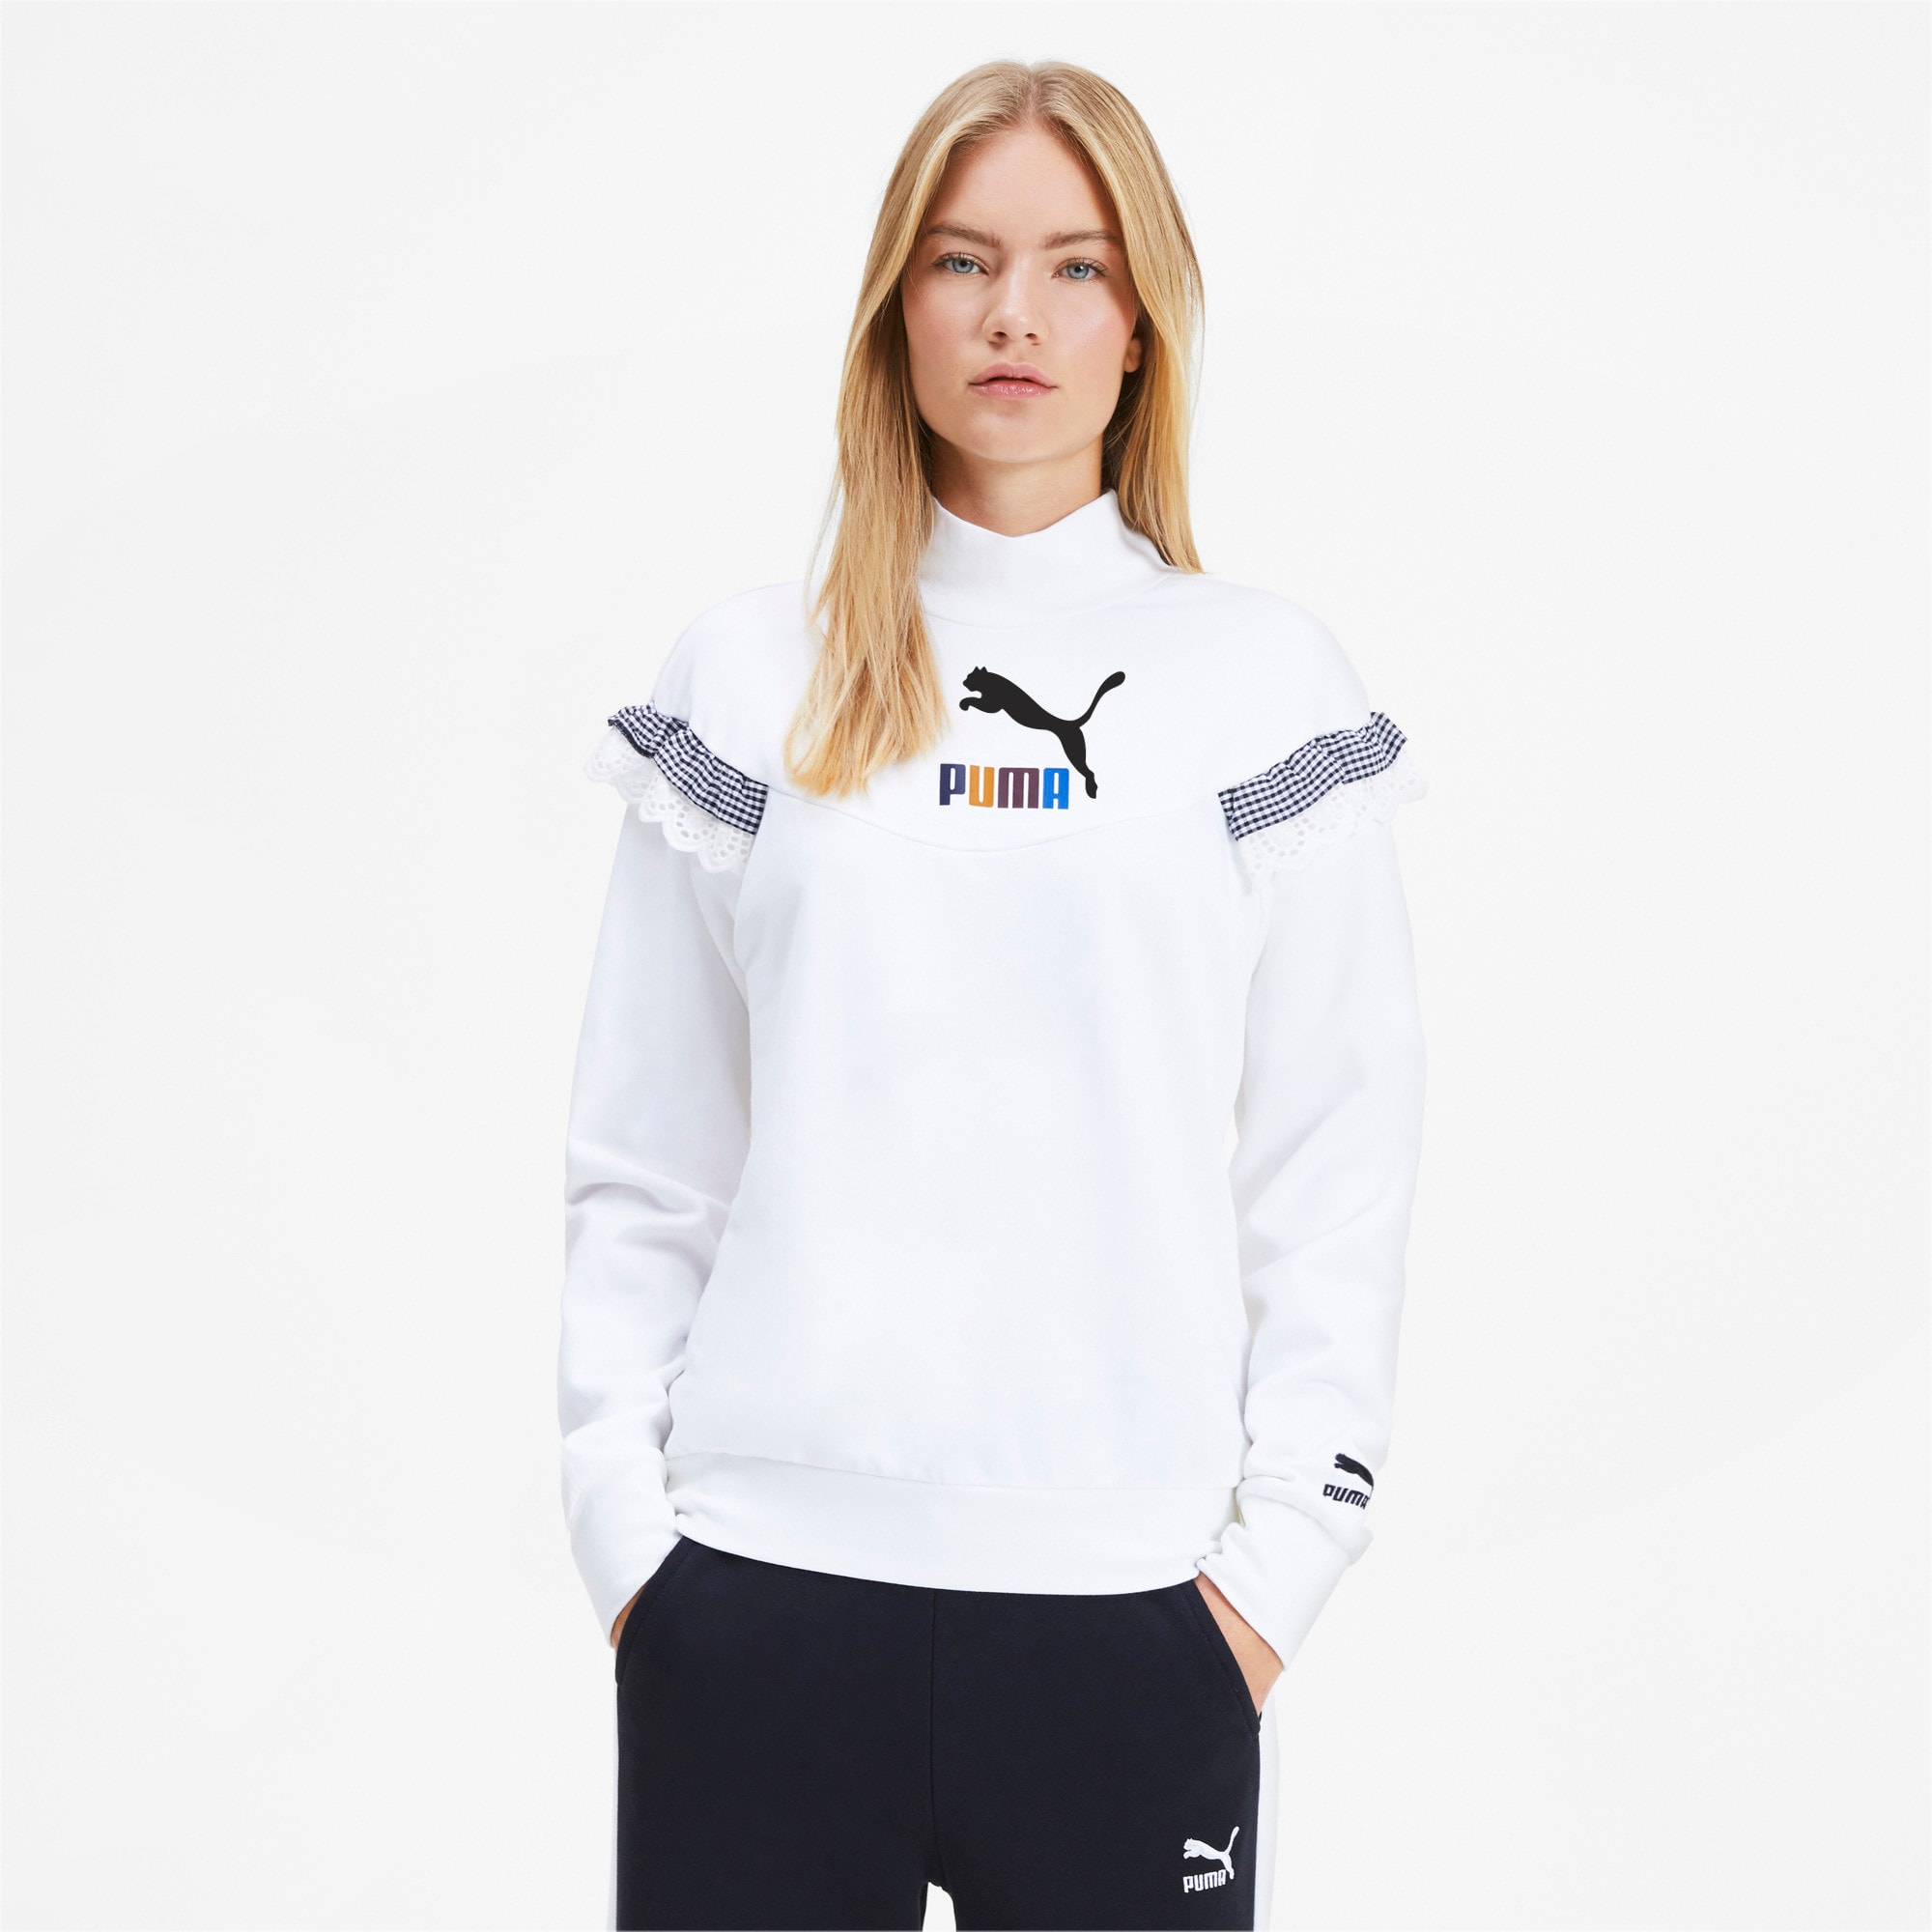 Thumbnail 2 of PUMA x TYAKASHA Women's Turtleneck Sweater, Puma White, medium